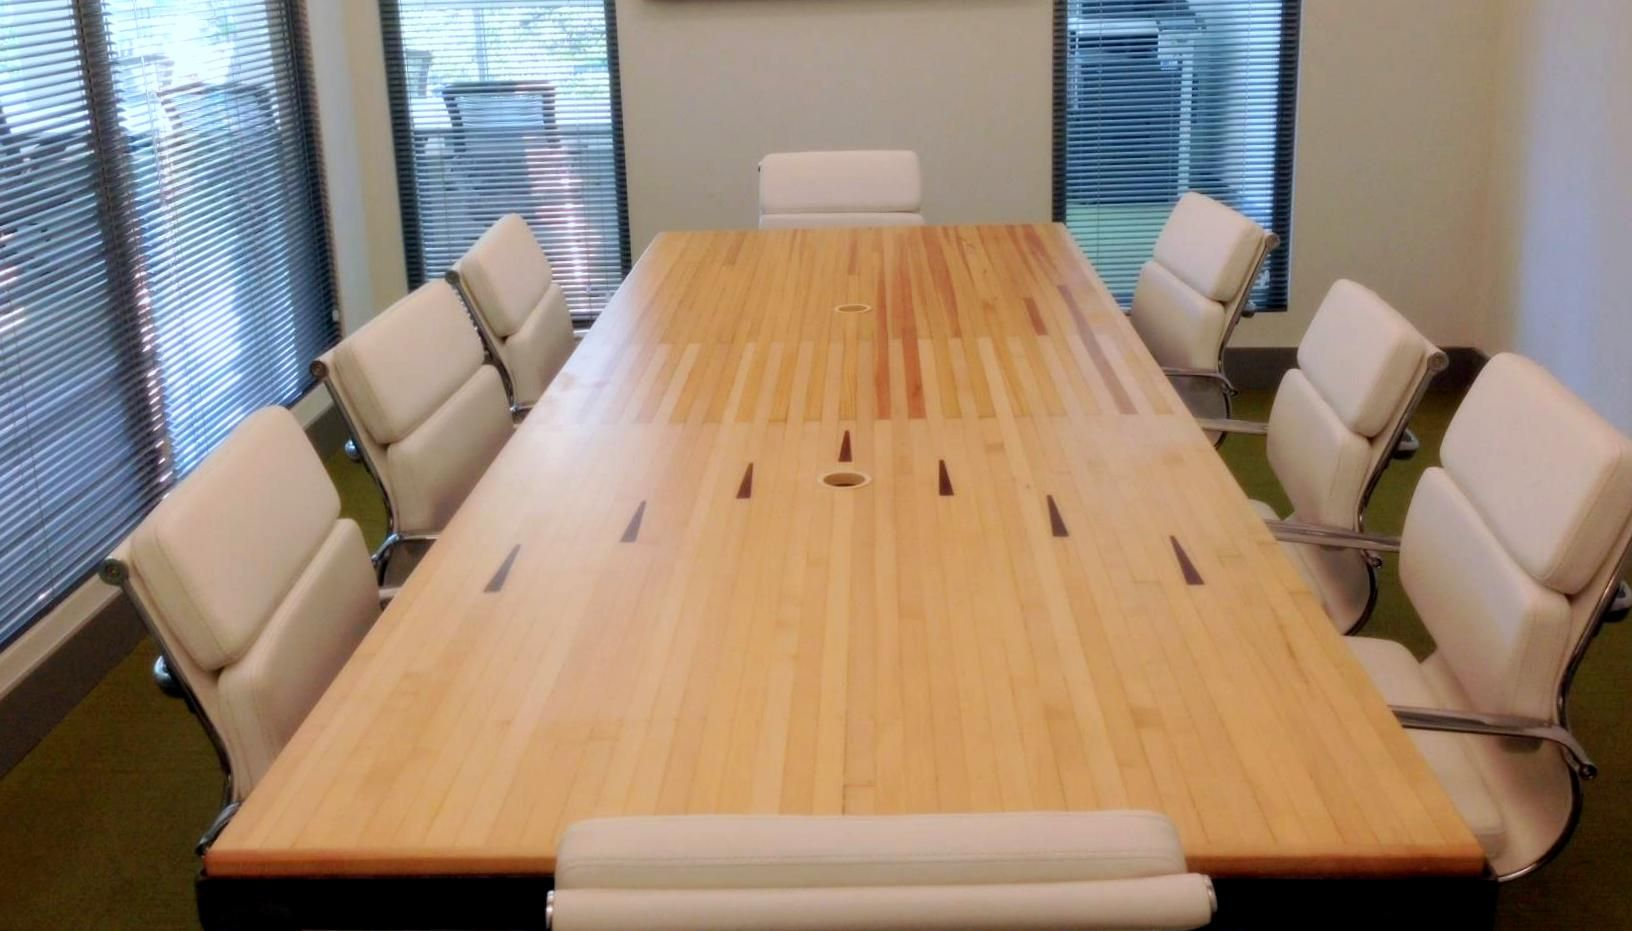 Reclaimed wood conference tables - The Ecojacks Team Built A Gorgeous Conference Table For The New South Beach Location Of B Ro